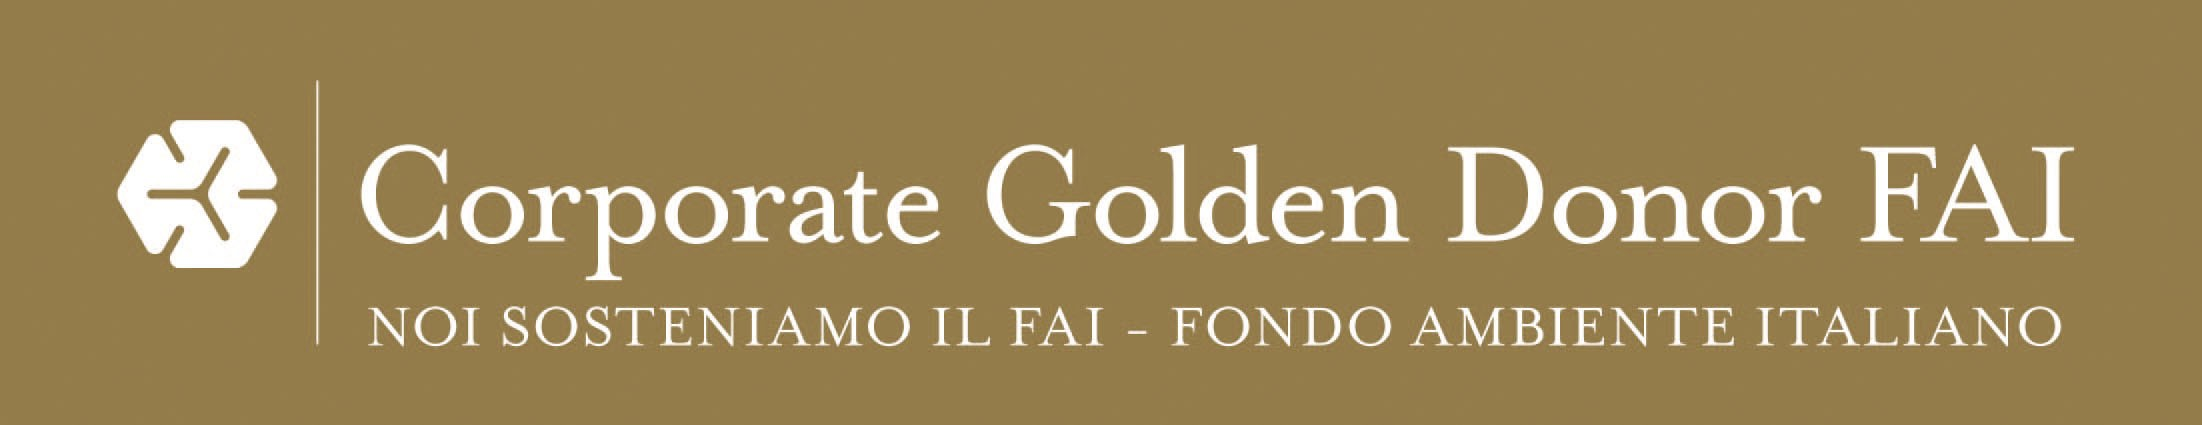 FAI Golden Corporate Donor